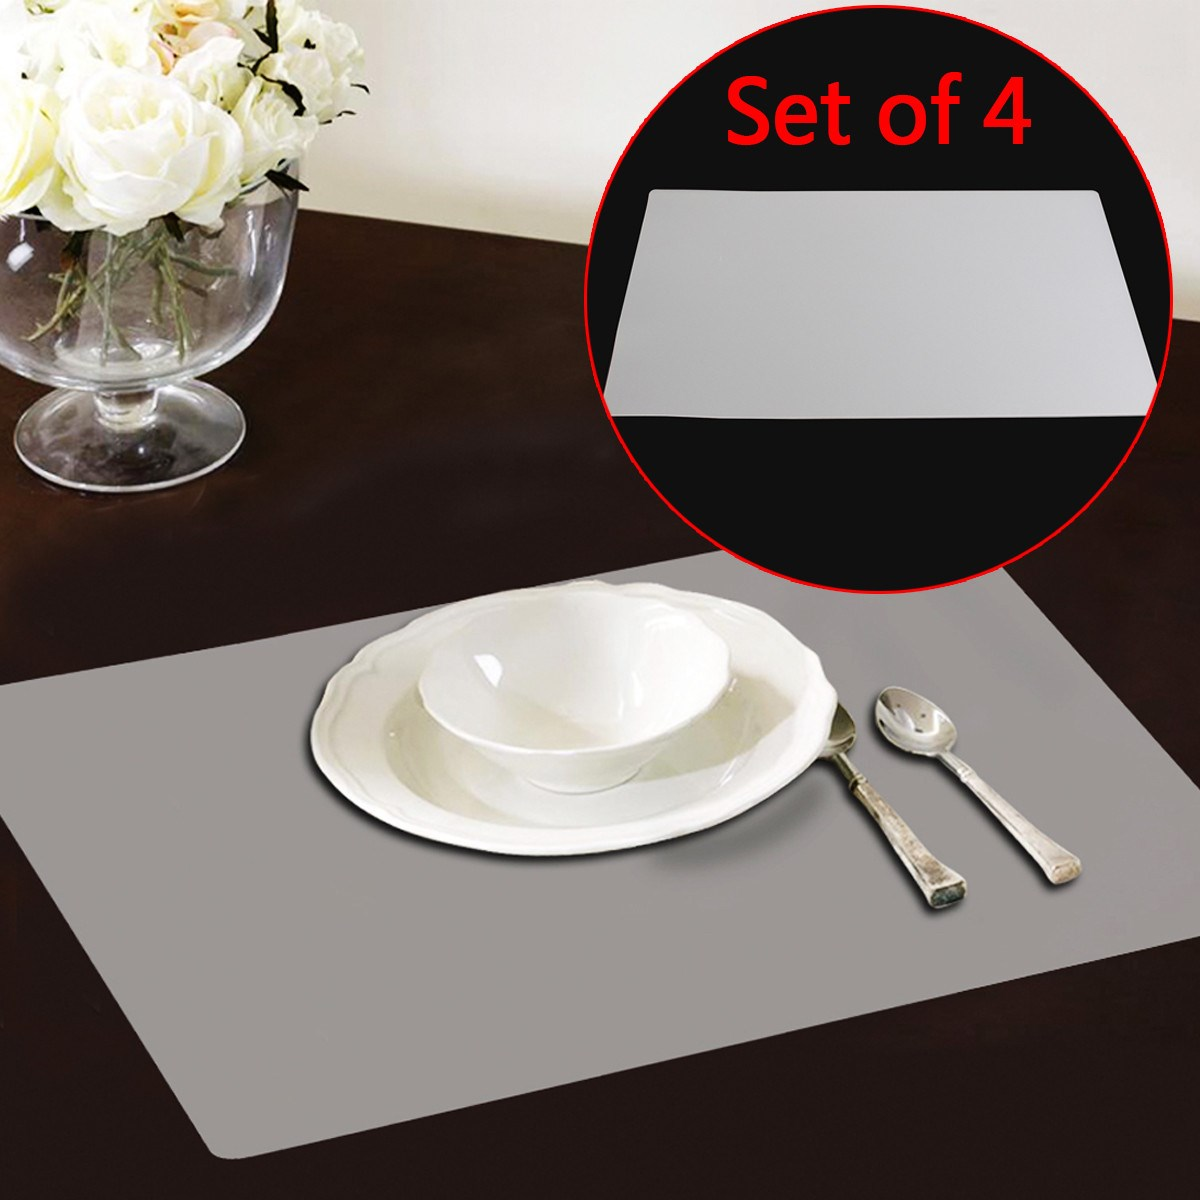 Vinyl Placemats Nz Placemat Set Of Reversible Kitchen Table - Clear placemats for table